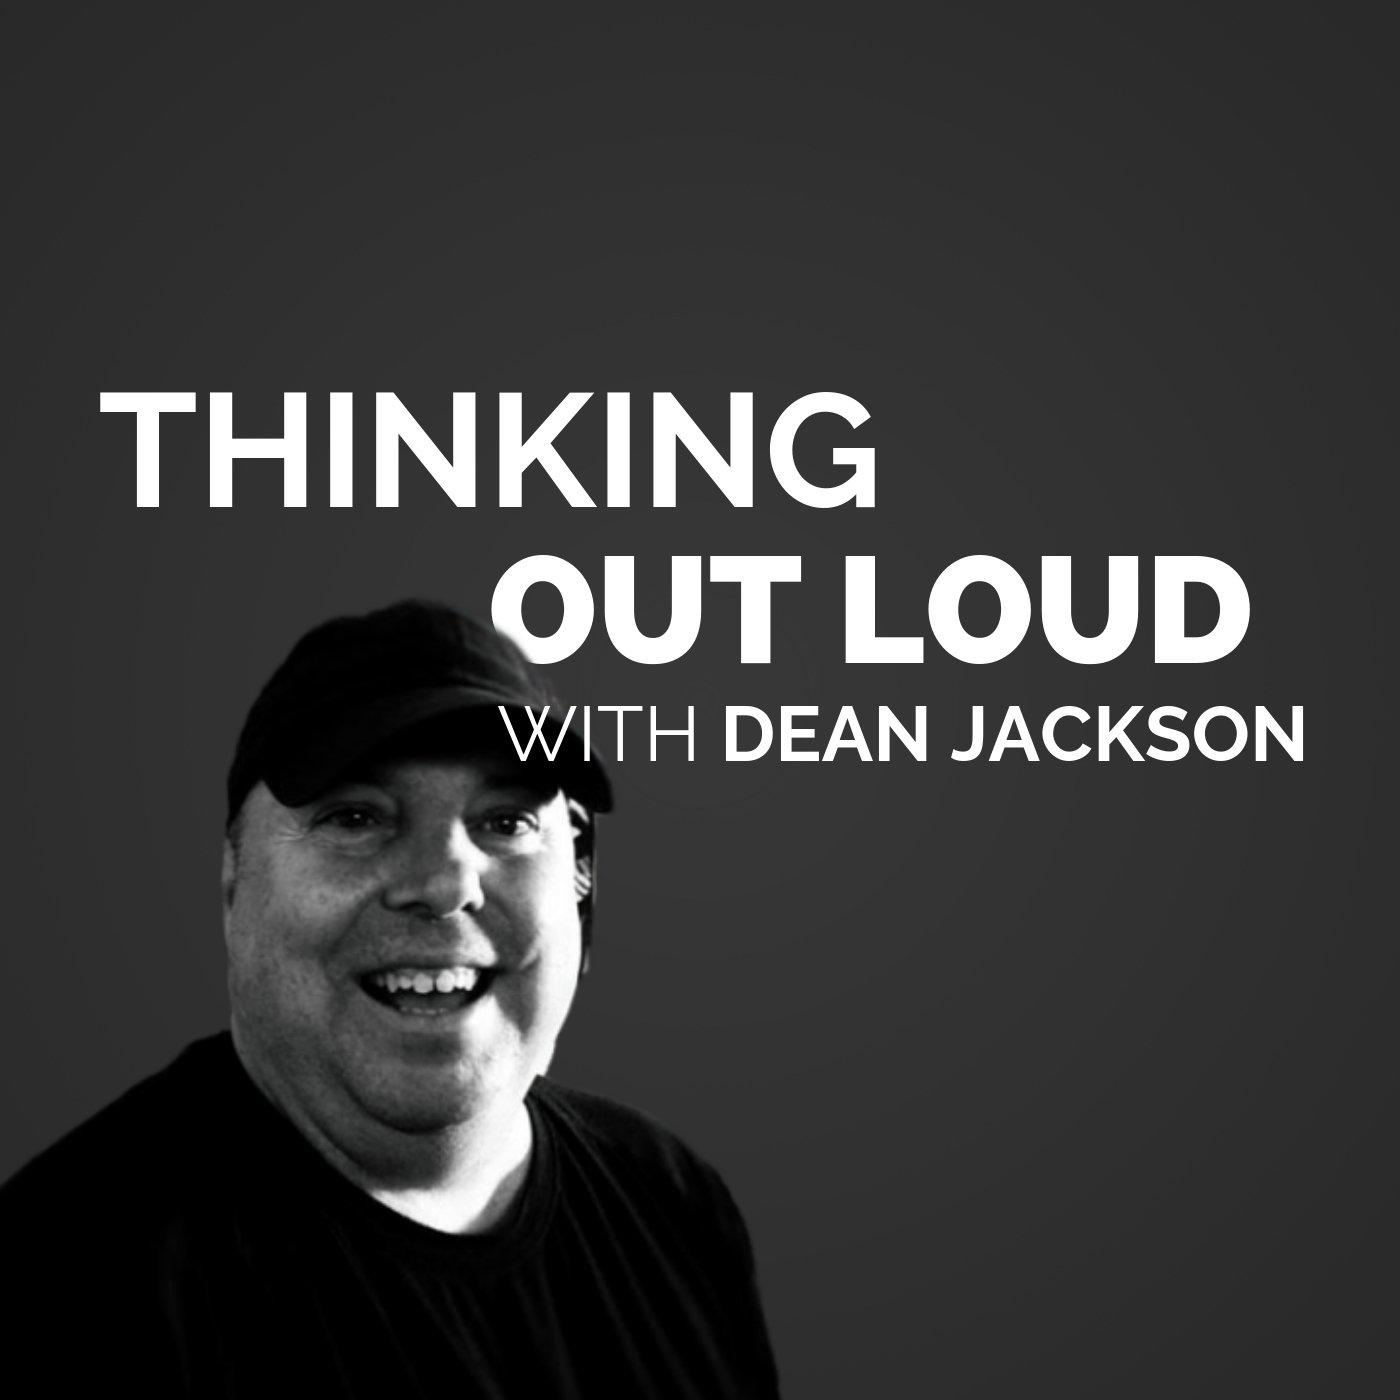 Thinking Out Loud with Dean Jackson